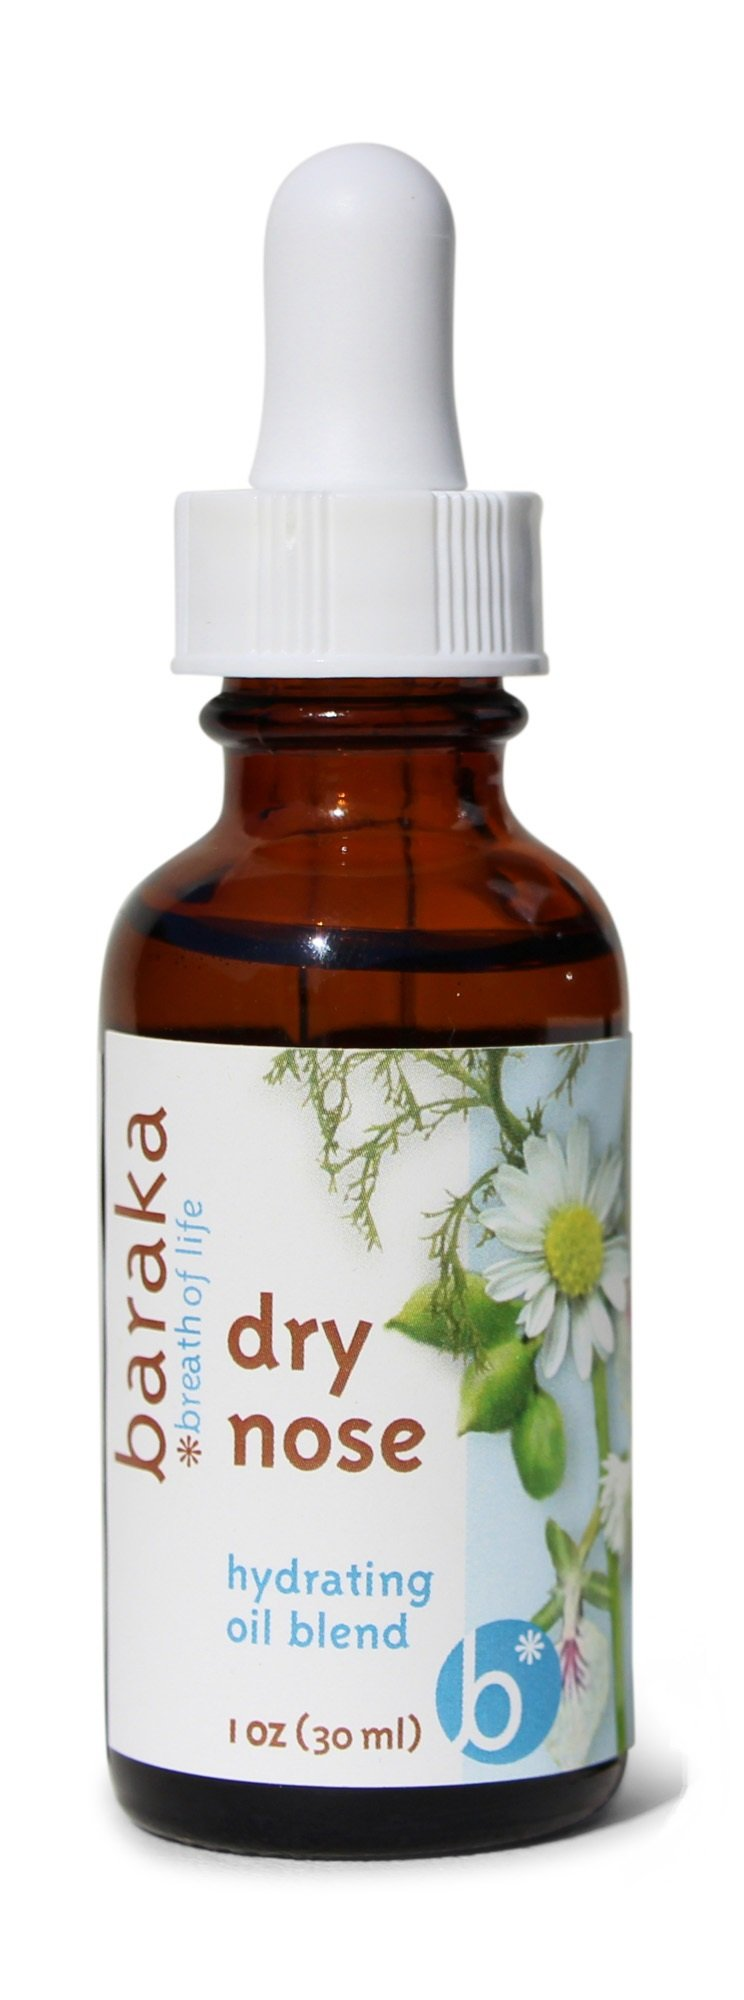 Baraka Dry Nose Nasal Moisturizer with 4 Organic Essential Oils in Sesame Oil Base for Hydrating Sinuses for Kids and Adults - 1 oz Dropper Bottle - 1 Pack